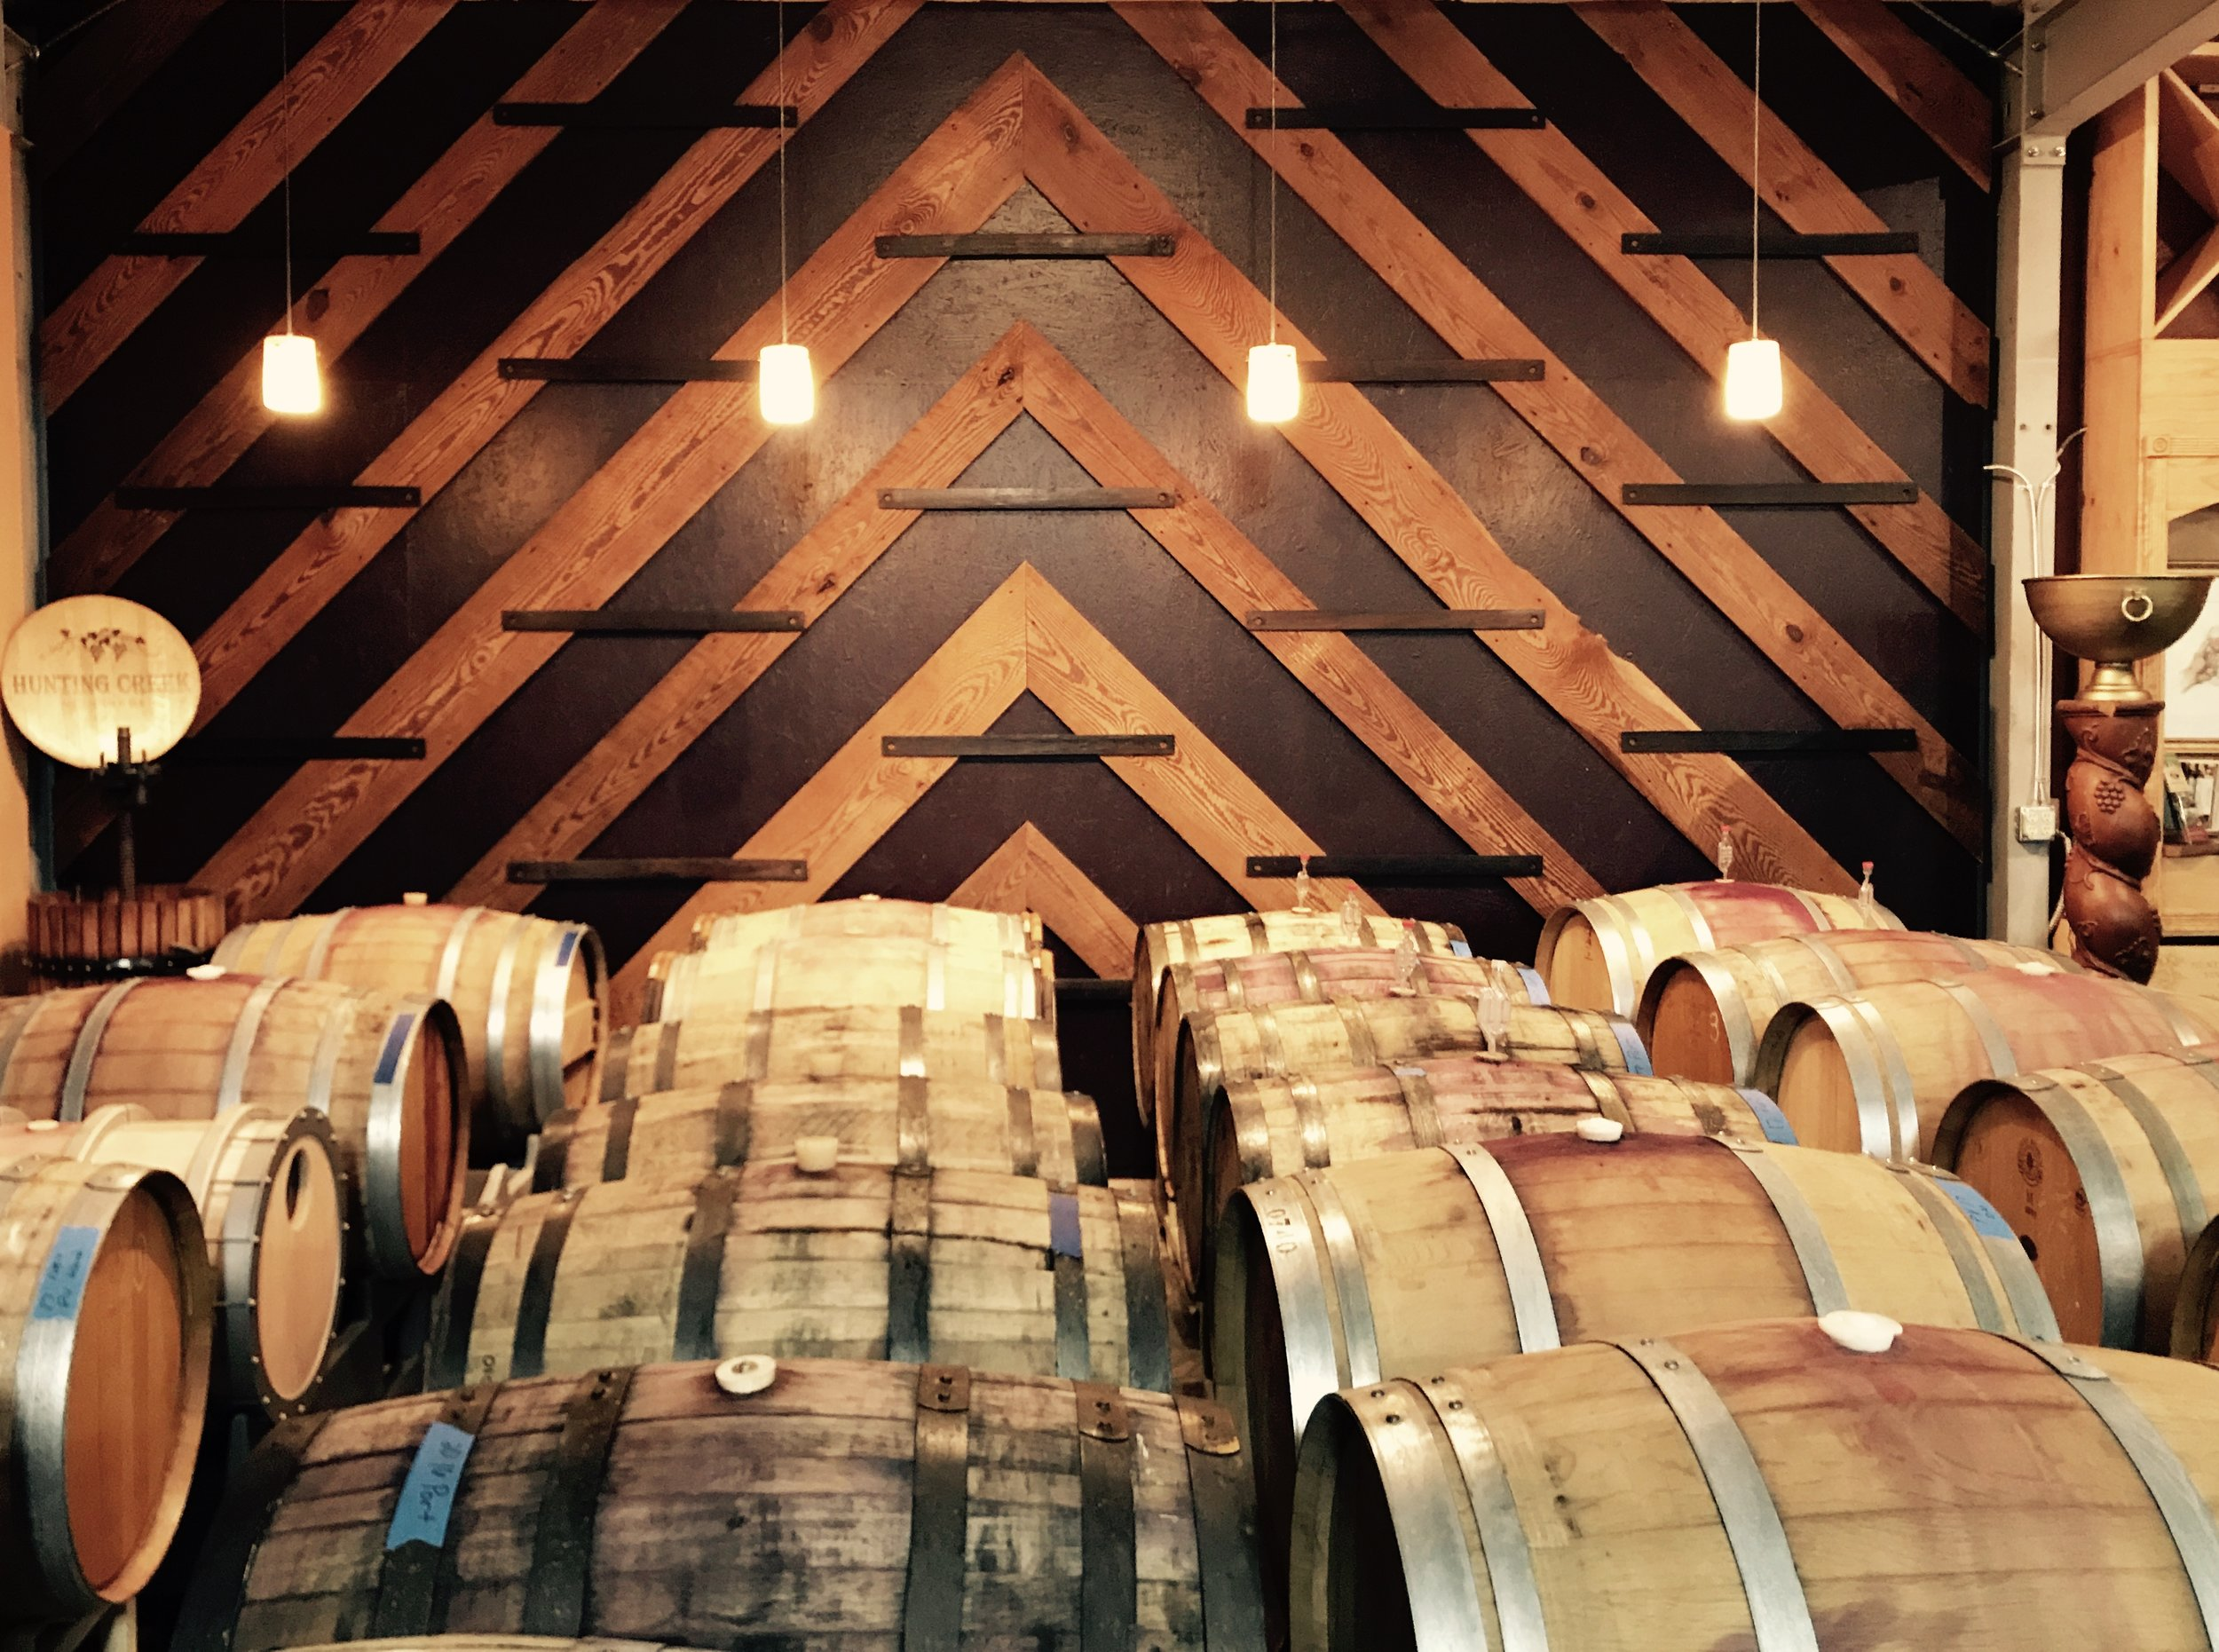 Barrel Previews - Preview what is coming next for Hunting Creek Vineyards with a trip to our wine cellar. Schedule a preview to compliment your wine pairing or library wine tasting with the owners/winemakers. (Preview 2 wines for $6) (Call or E-mail in advance)